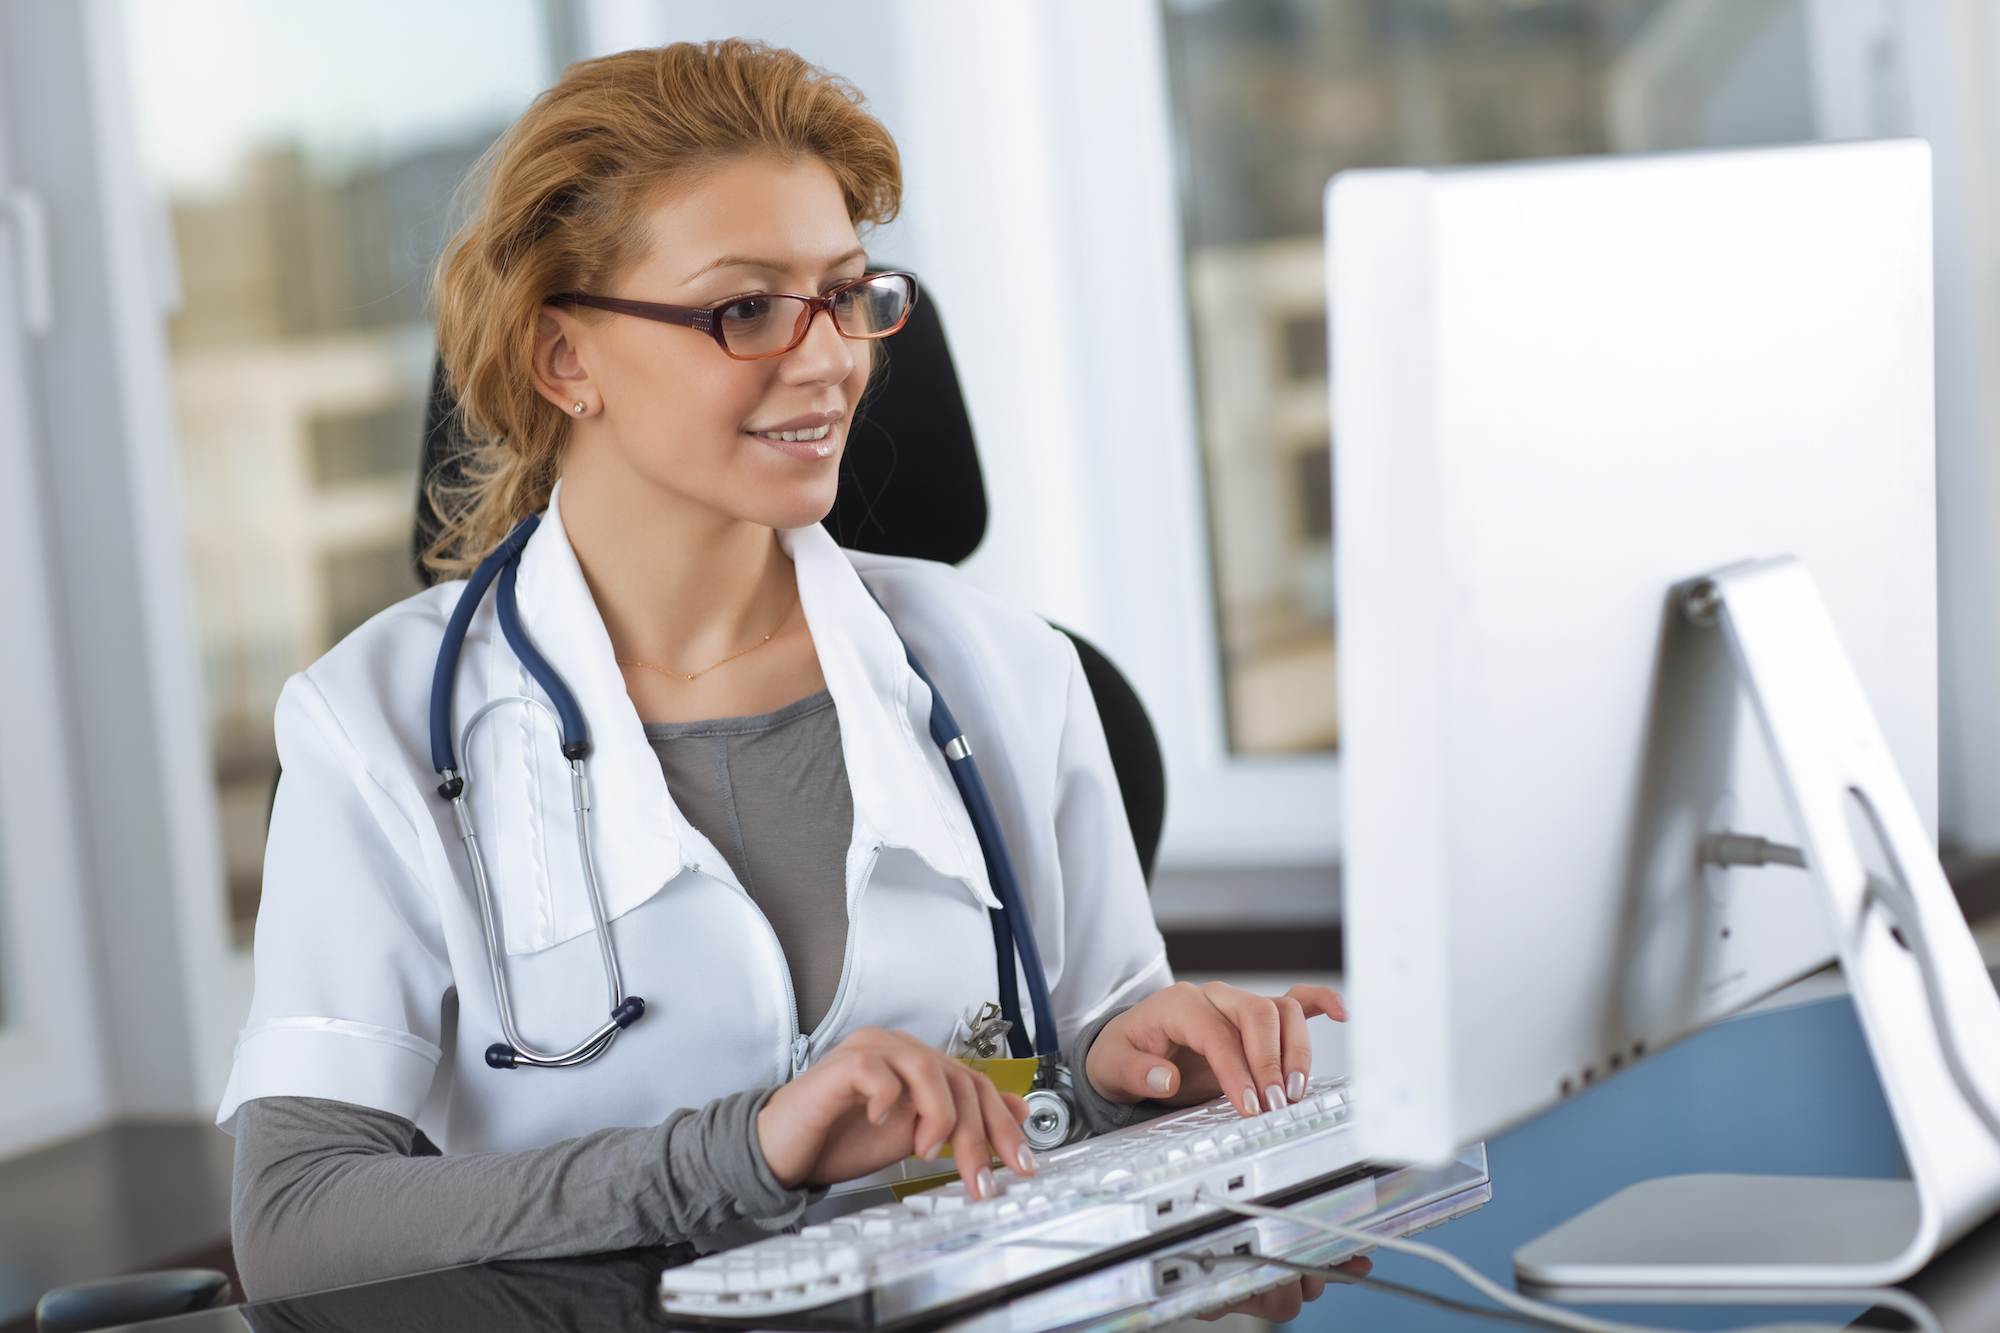 medical billing & coding school in union, nj, Human Body